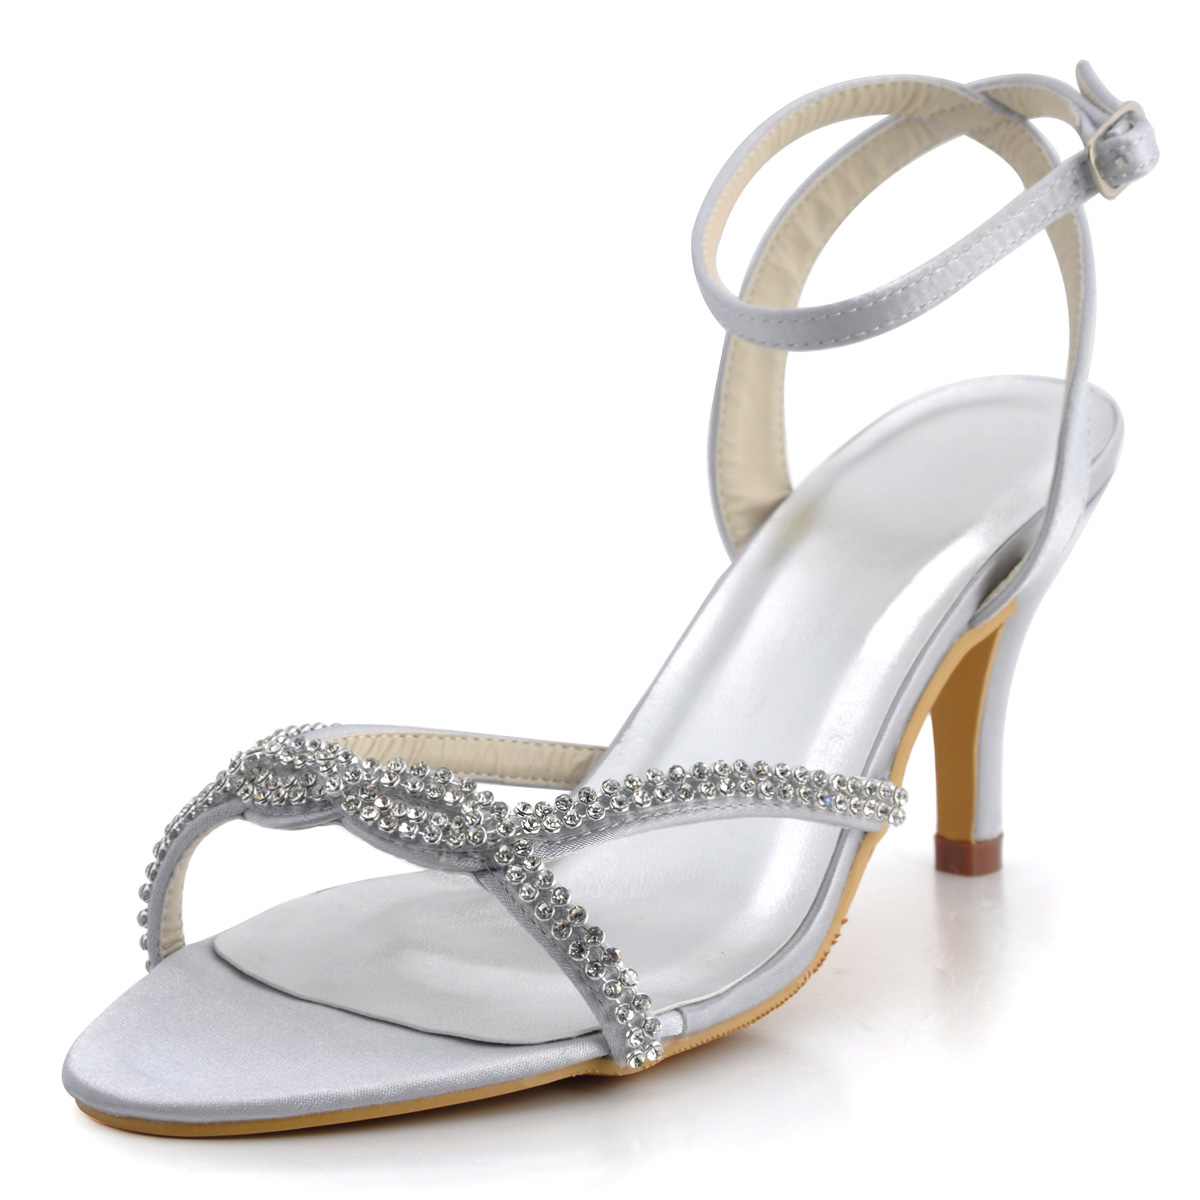 top best wedding bridal shoes sandals flats designer heels bride cheap ivory wedding sandals for bride wedding shoes bridal shoes wedding shoes for bride wedding sandals wedding flats